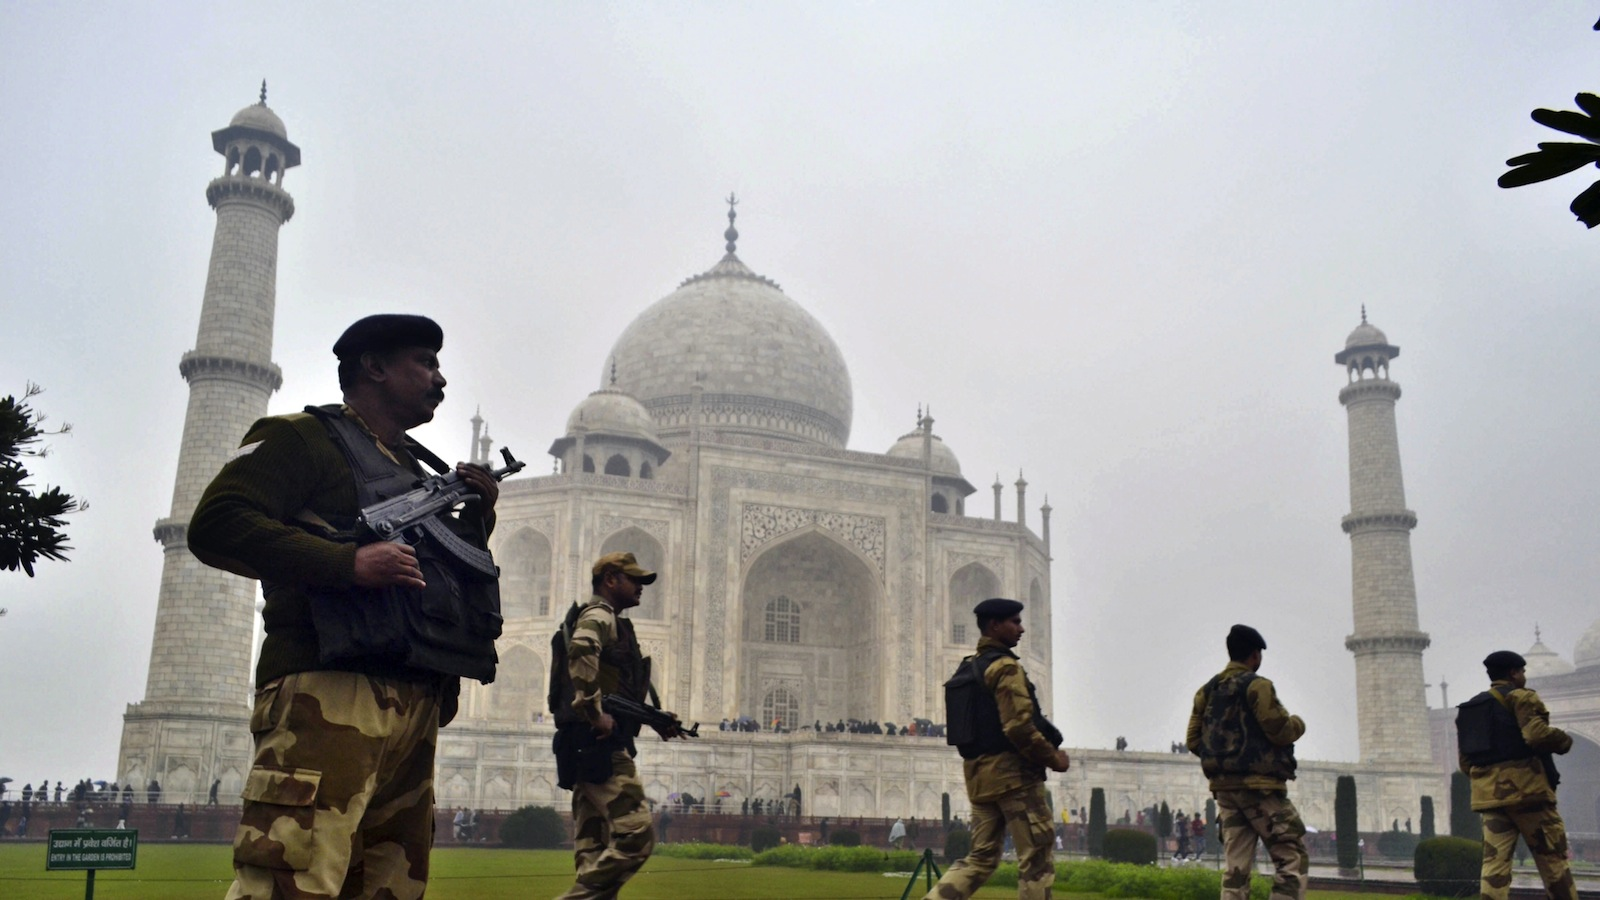 In this Jan. 22, 2015 file photo, Central Industrial Security Force (CISF) personnel keep a watch on the surroundings at the Taj Mahal before U.S. President Barack Obama's planned visit in Agra, India. Obama has canceled his visit to the Taj Mahal that had been planned on the final day of his trip to India, officials said Saturday, Jan. 24. (AP Photo/Pawan Sharma)